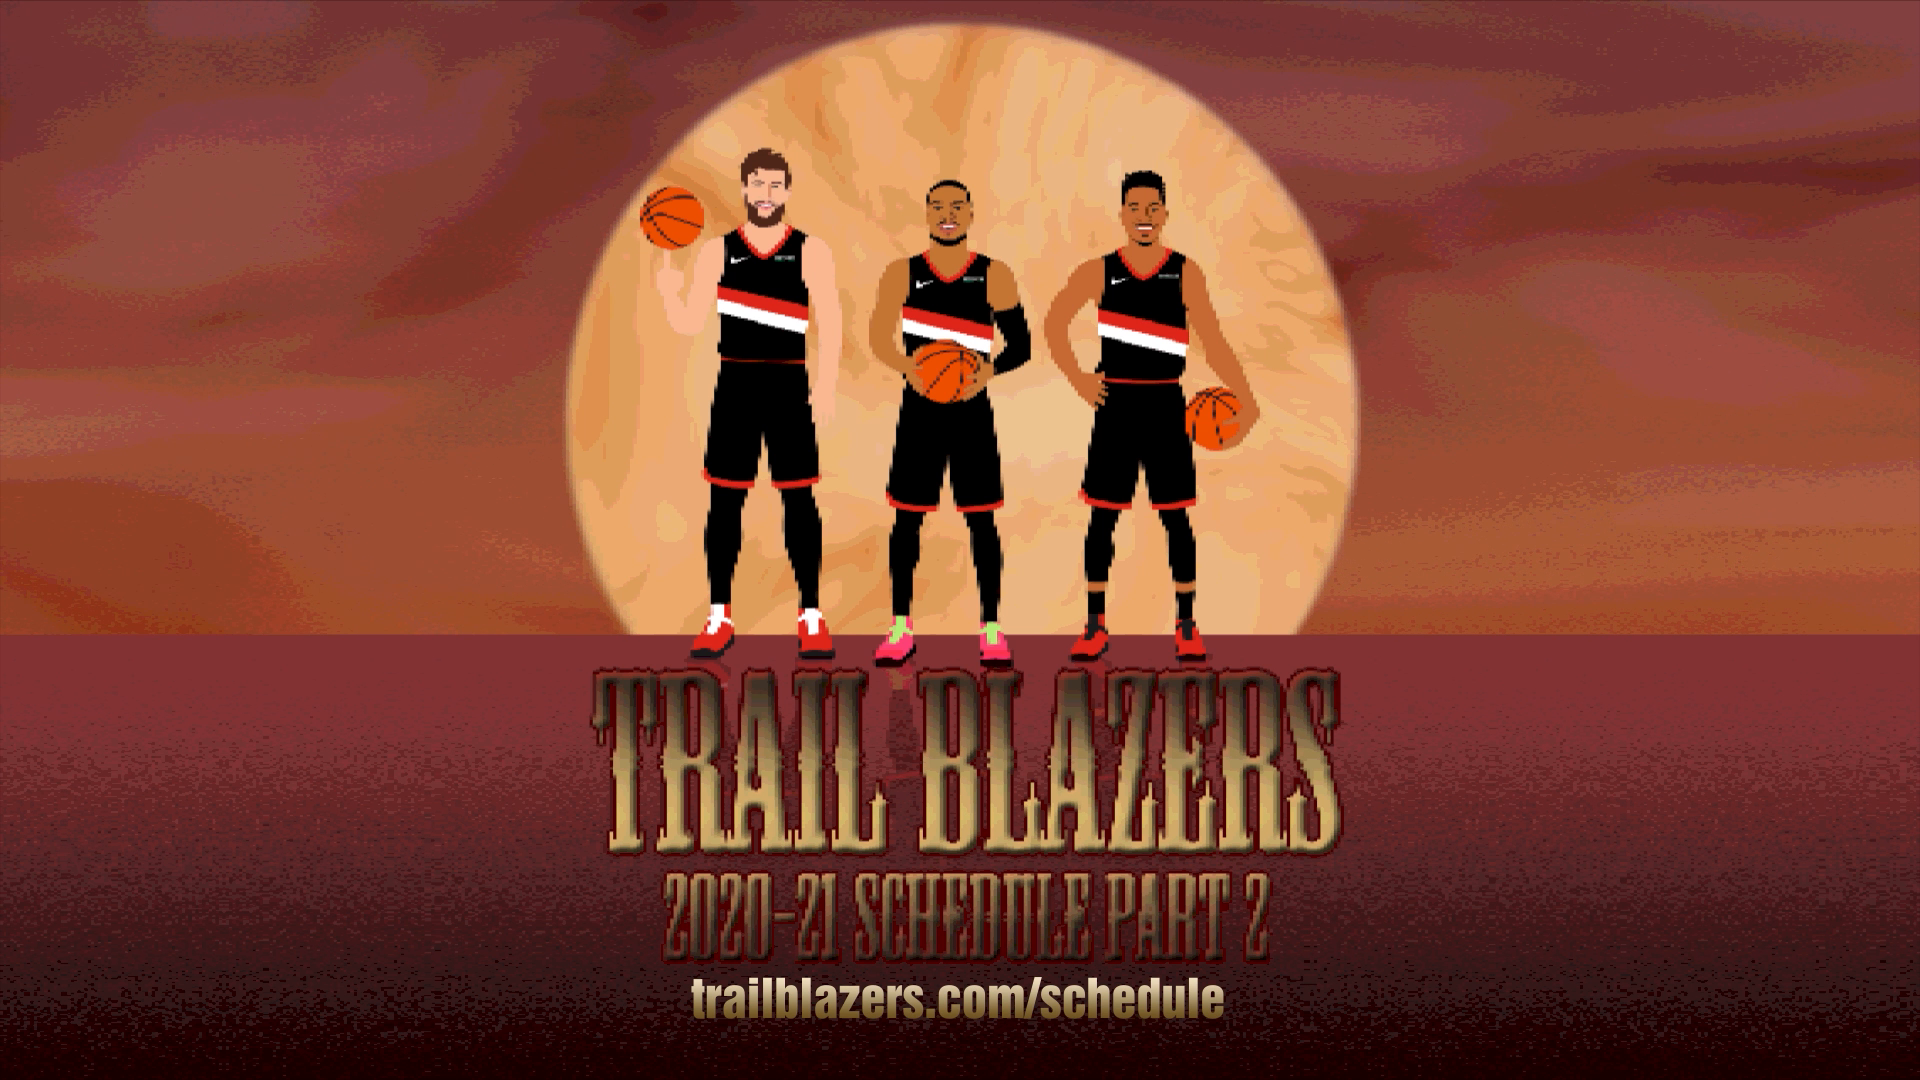 Second Half of 2020-21 Trail Blazers Schedule